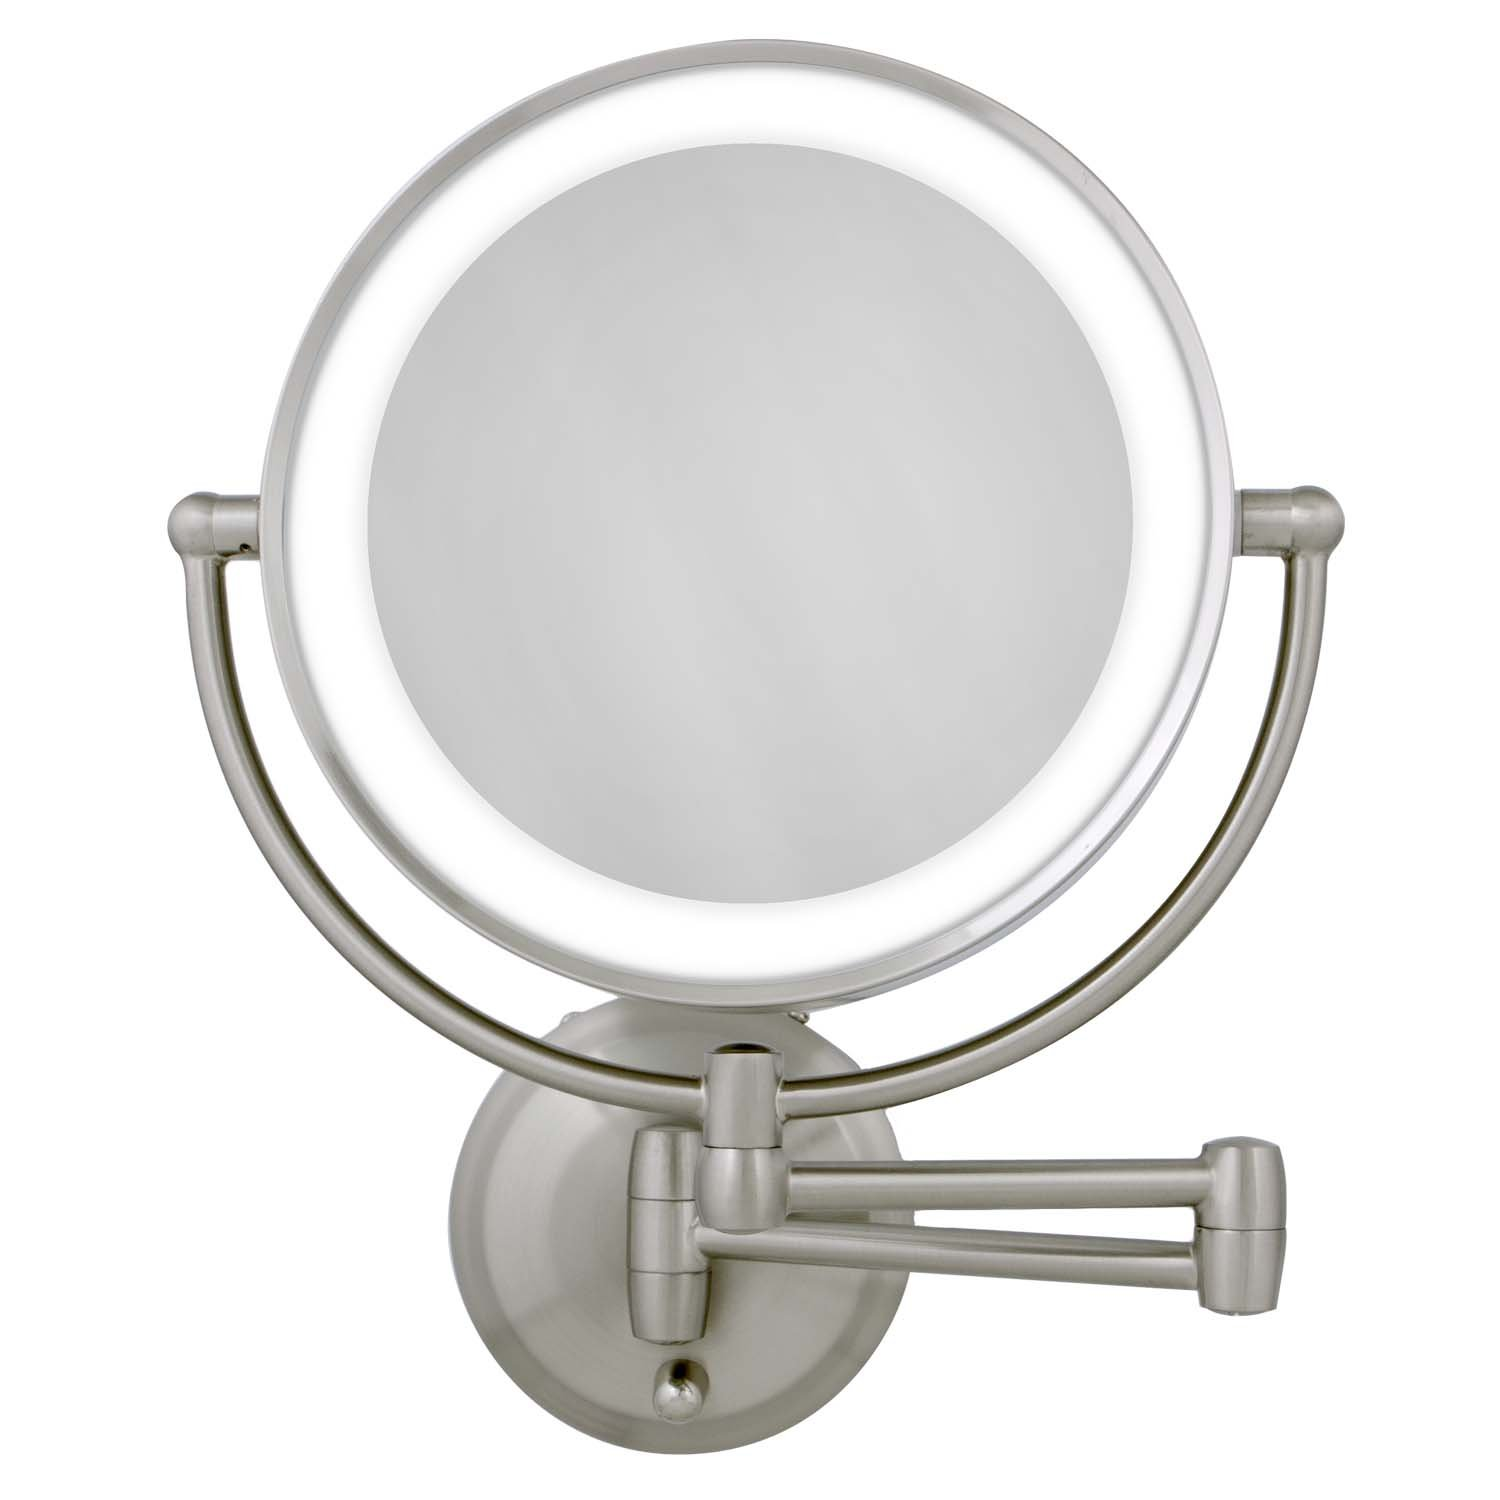 Zadro Rechargeable Dual LED Lighted Round Wall Mount Make Up Mirror with 1X & 10X magnification in Satin Nickel Finish